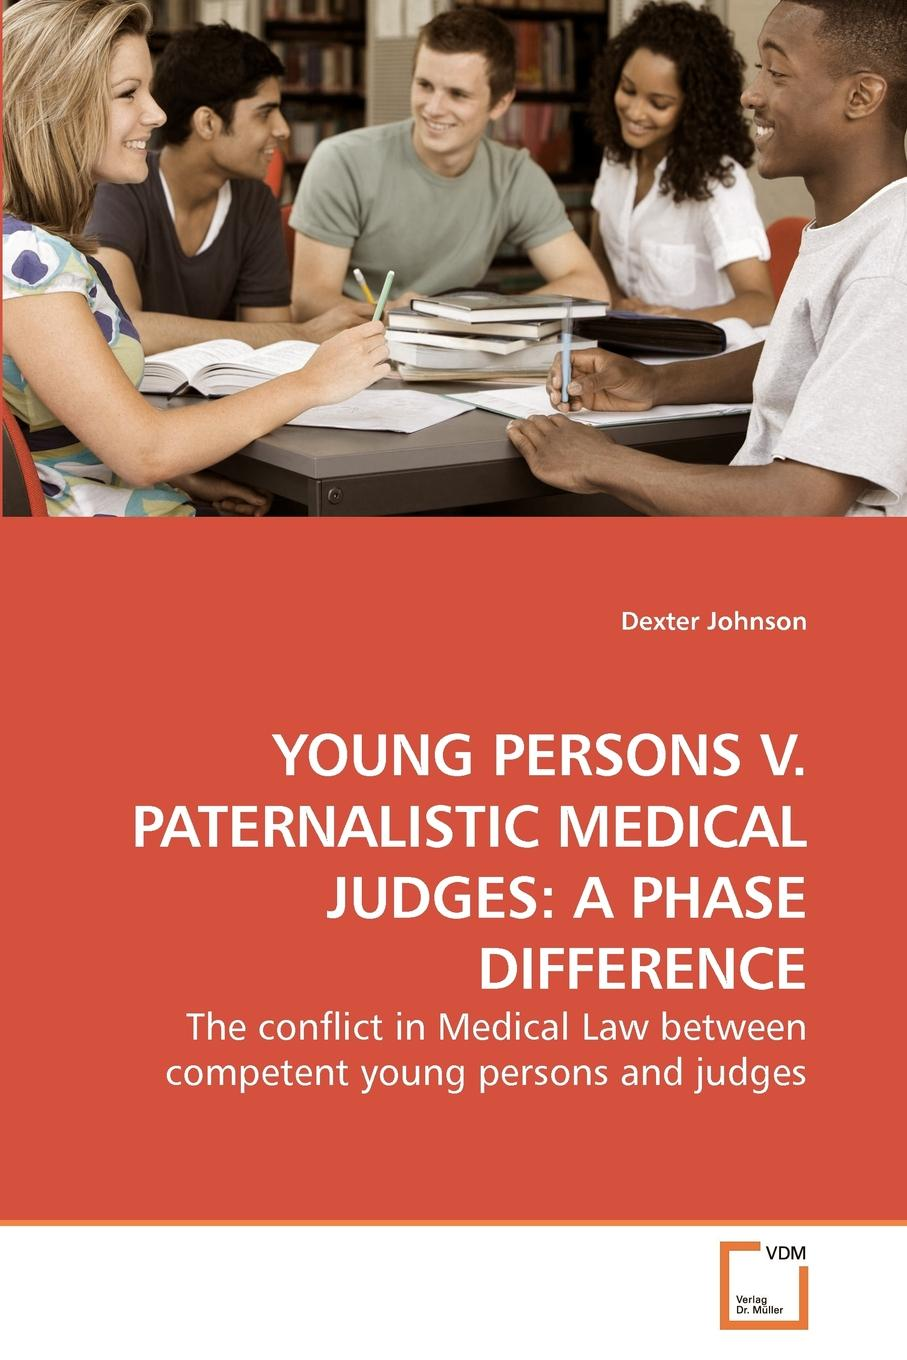 Dexter Johnson YOUNG PERSONS V. PATERNALISTIC MEDICAL JUDGES. A PHASE DIFFERENCE lorraine corfield abc of medical law